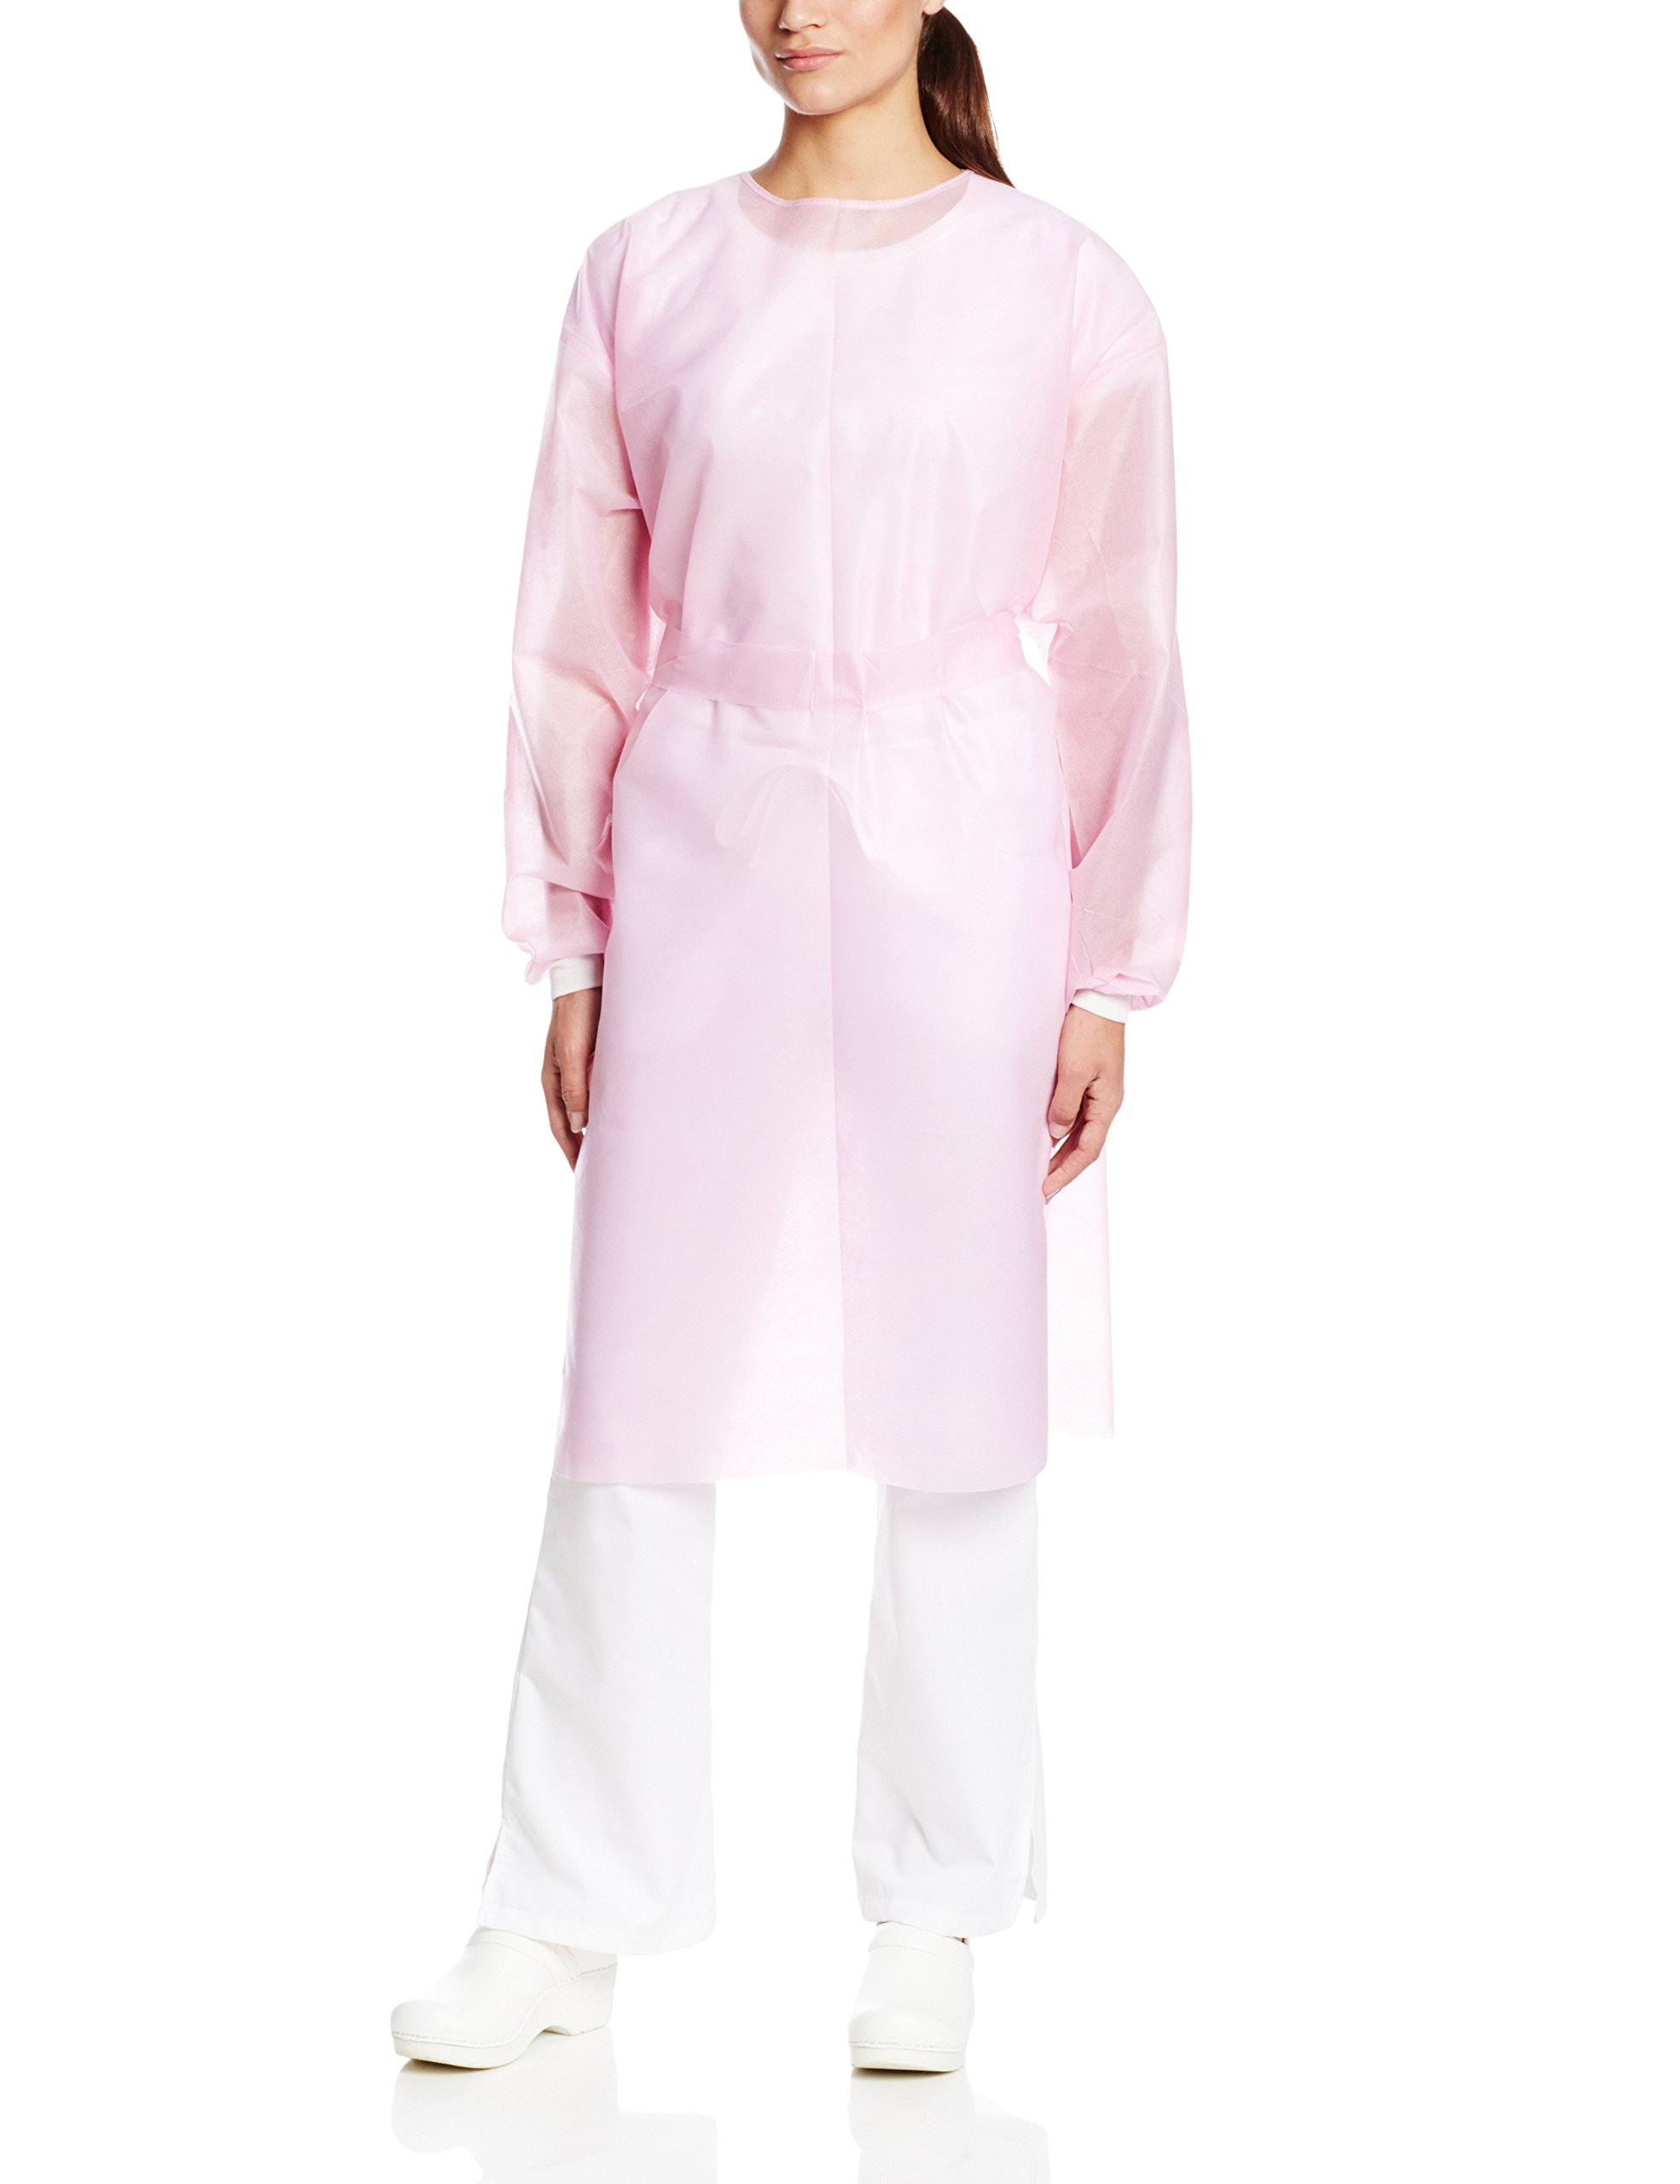 ValuMax 3360P Disposable SPP Cover Gown, Heavier Fabrics, Fluid Resistant, Tie Back, Knit Cuffs, Pink, Regular Size, Pack of 10